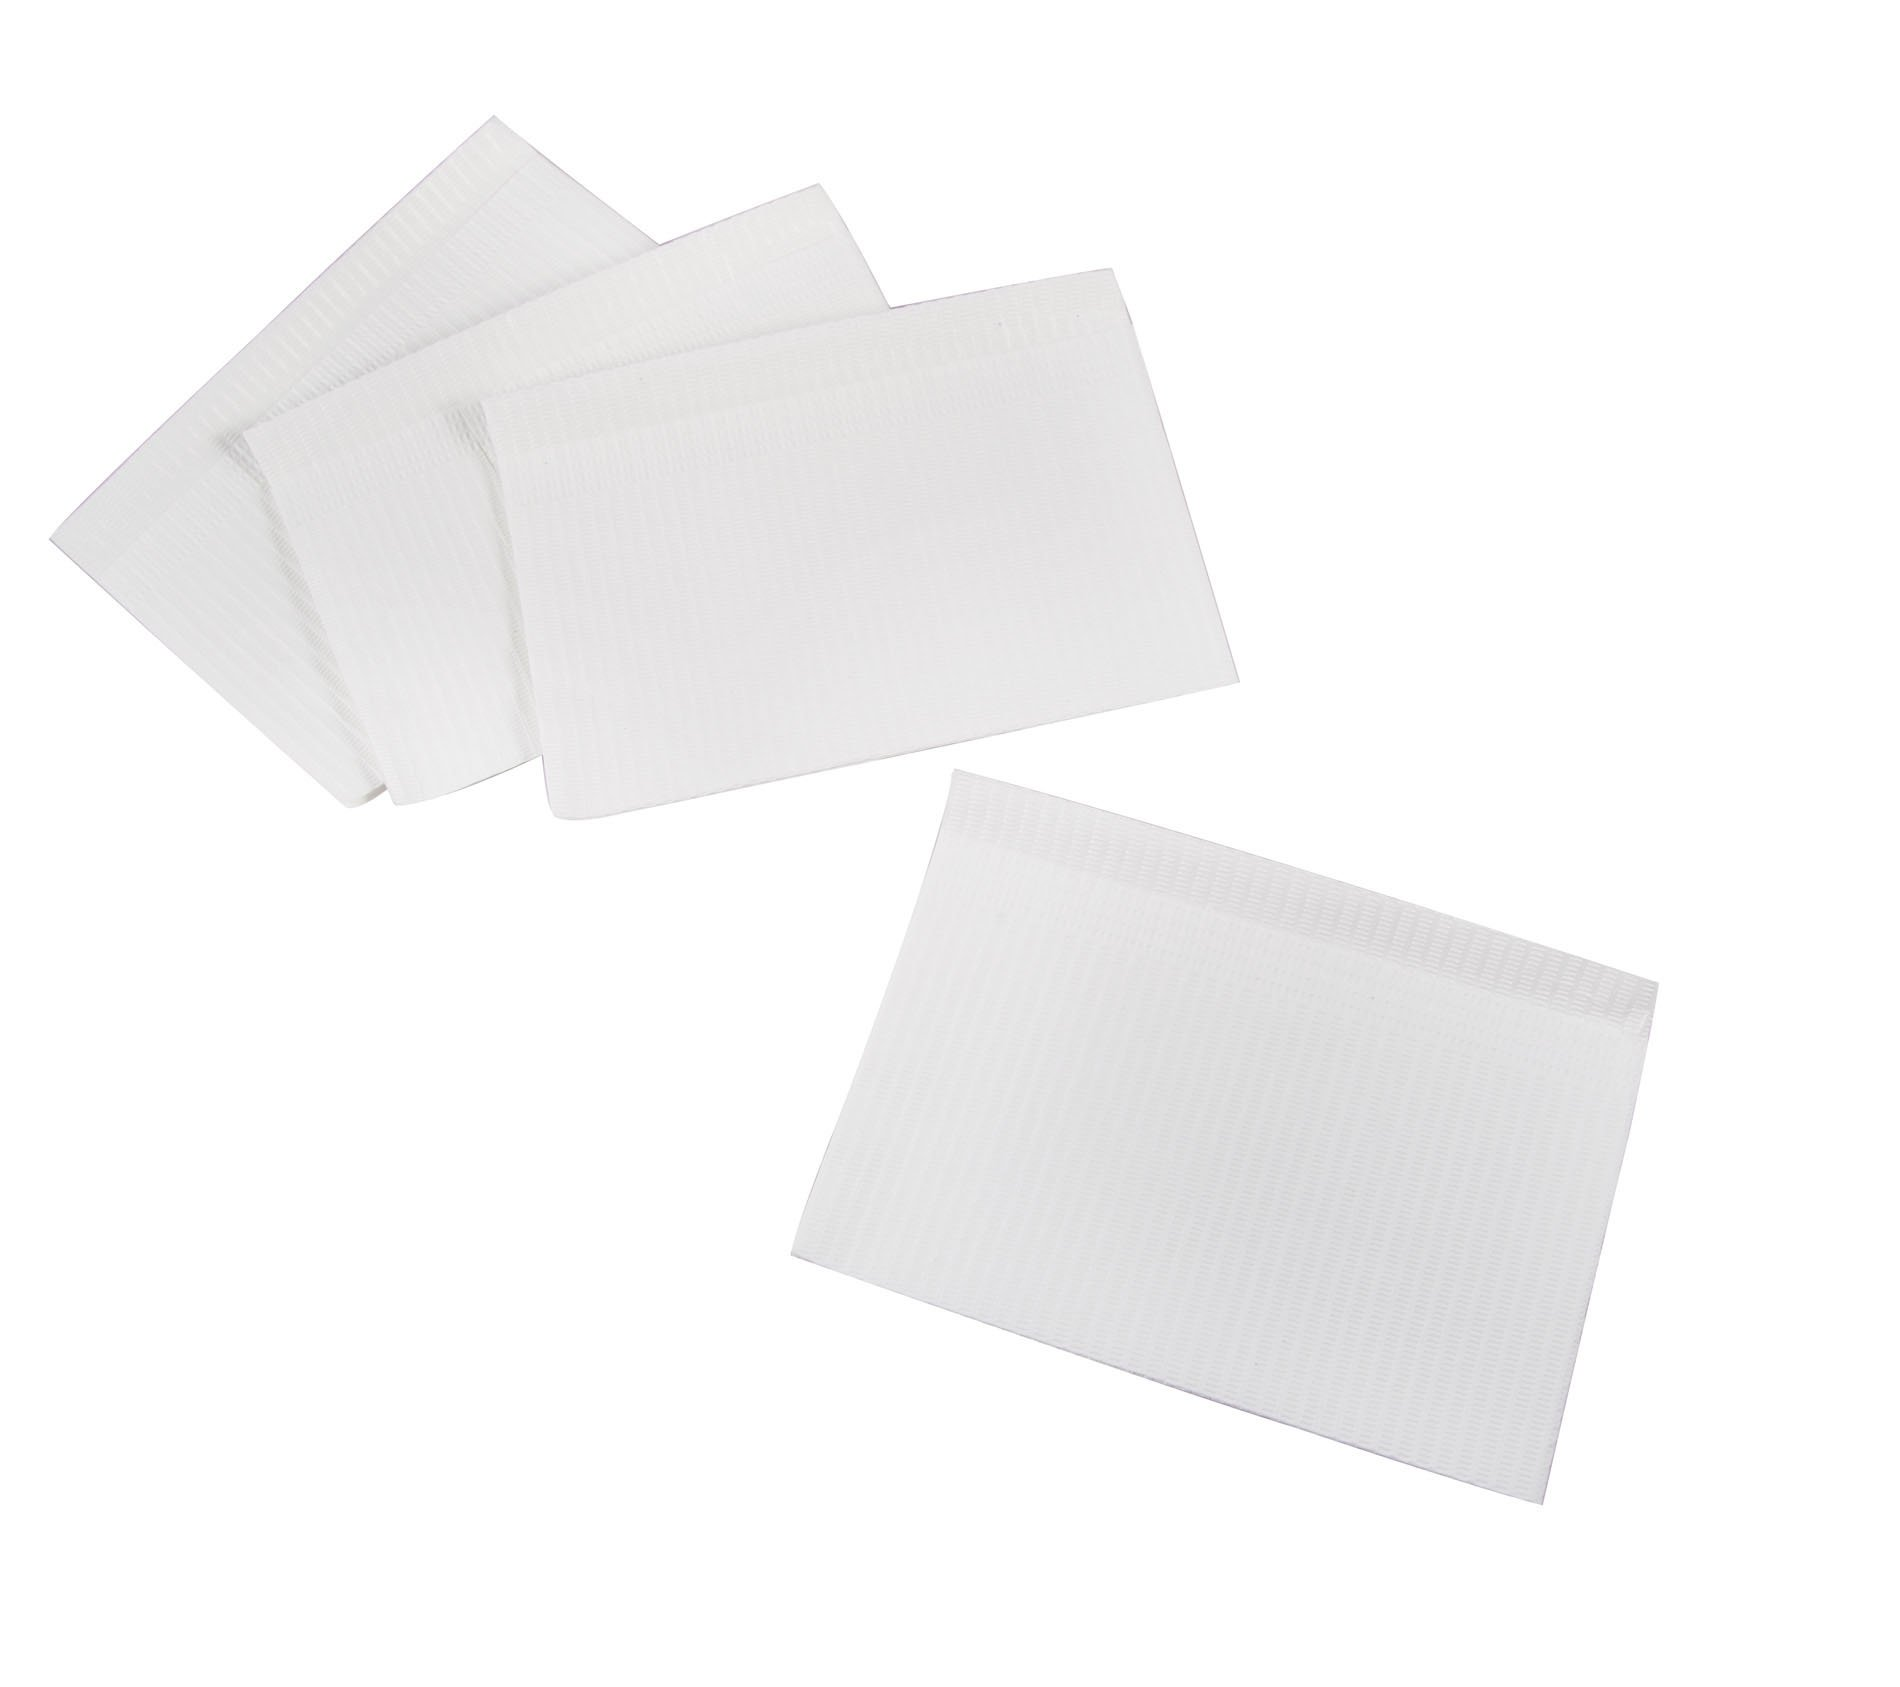 Primo Dental Products PBWH Patient Bib, 2-ply with Poly, 13'' x 18'', White (Pack of 500)